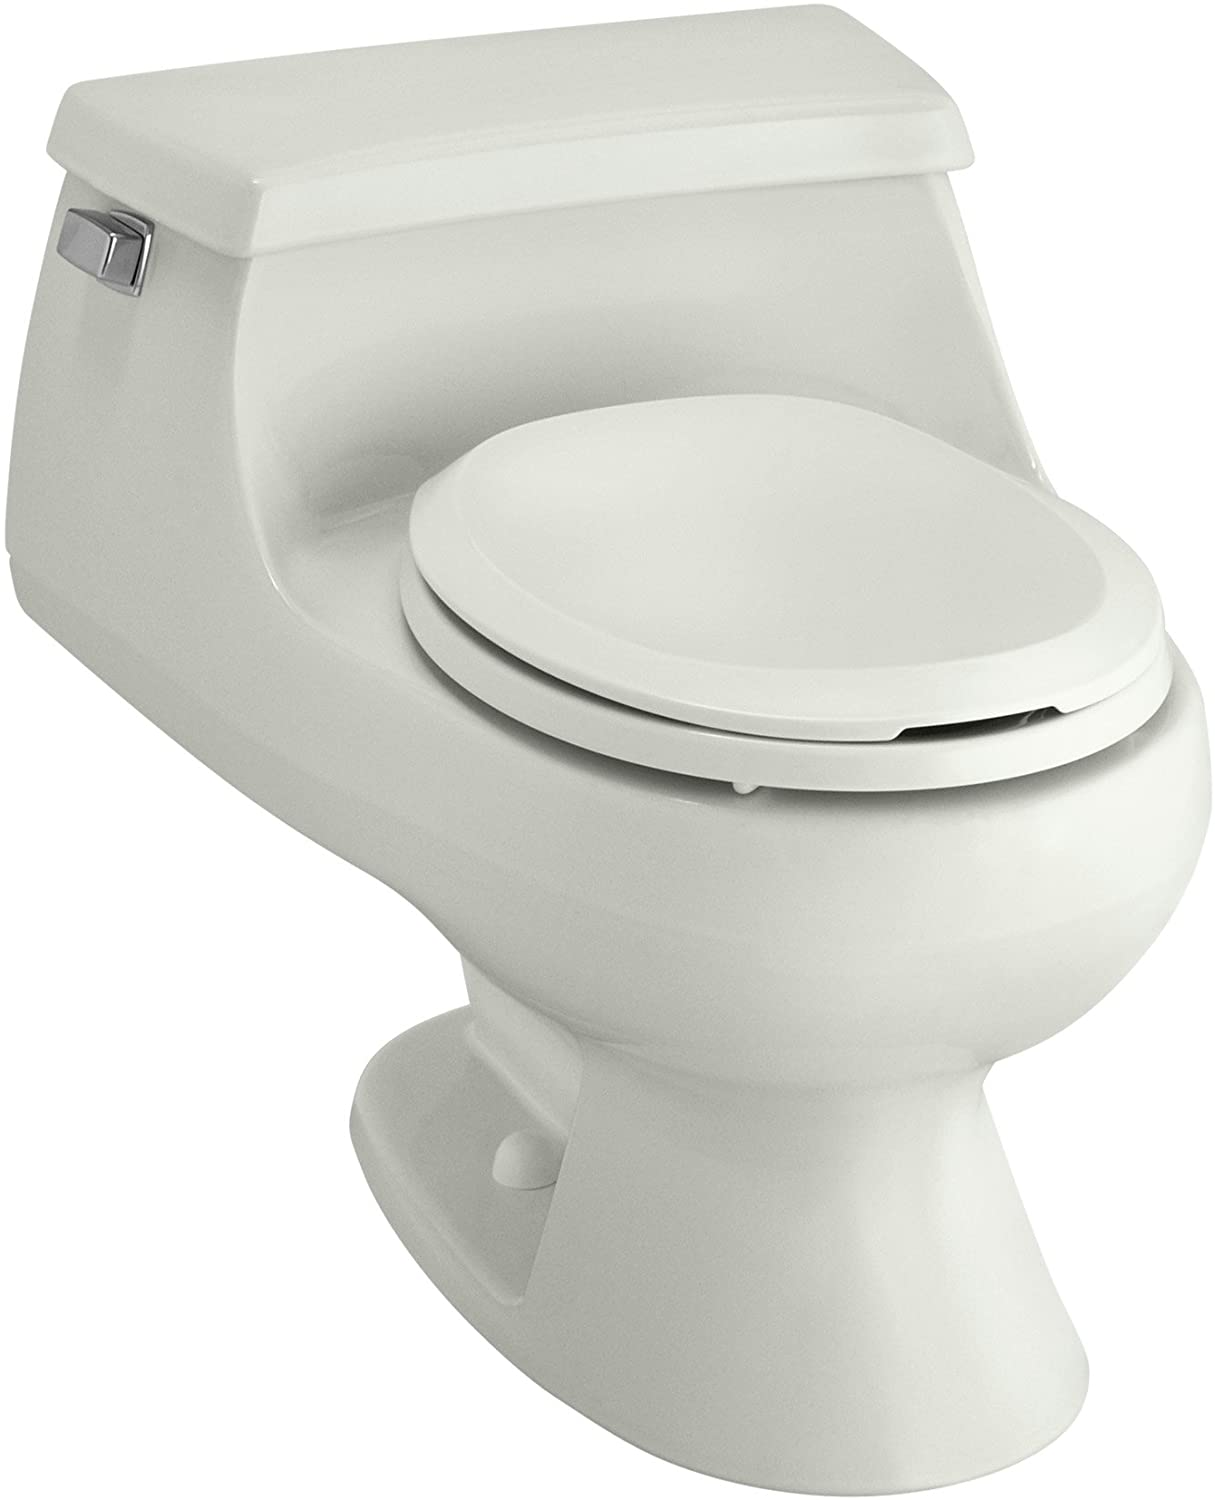 clean touch bidet toilet seat canada warranty